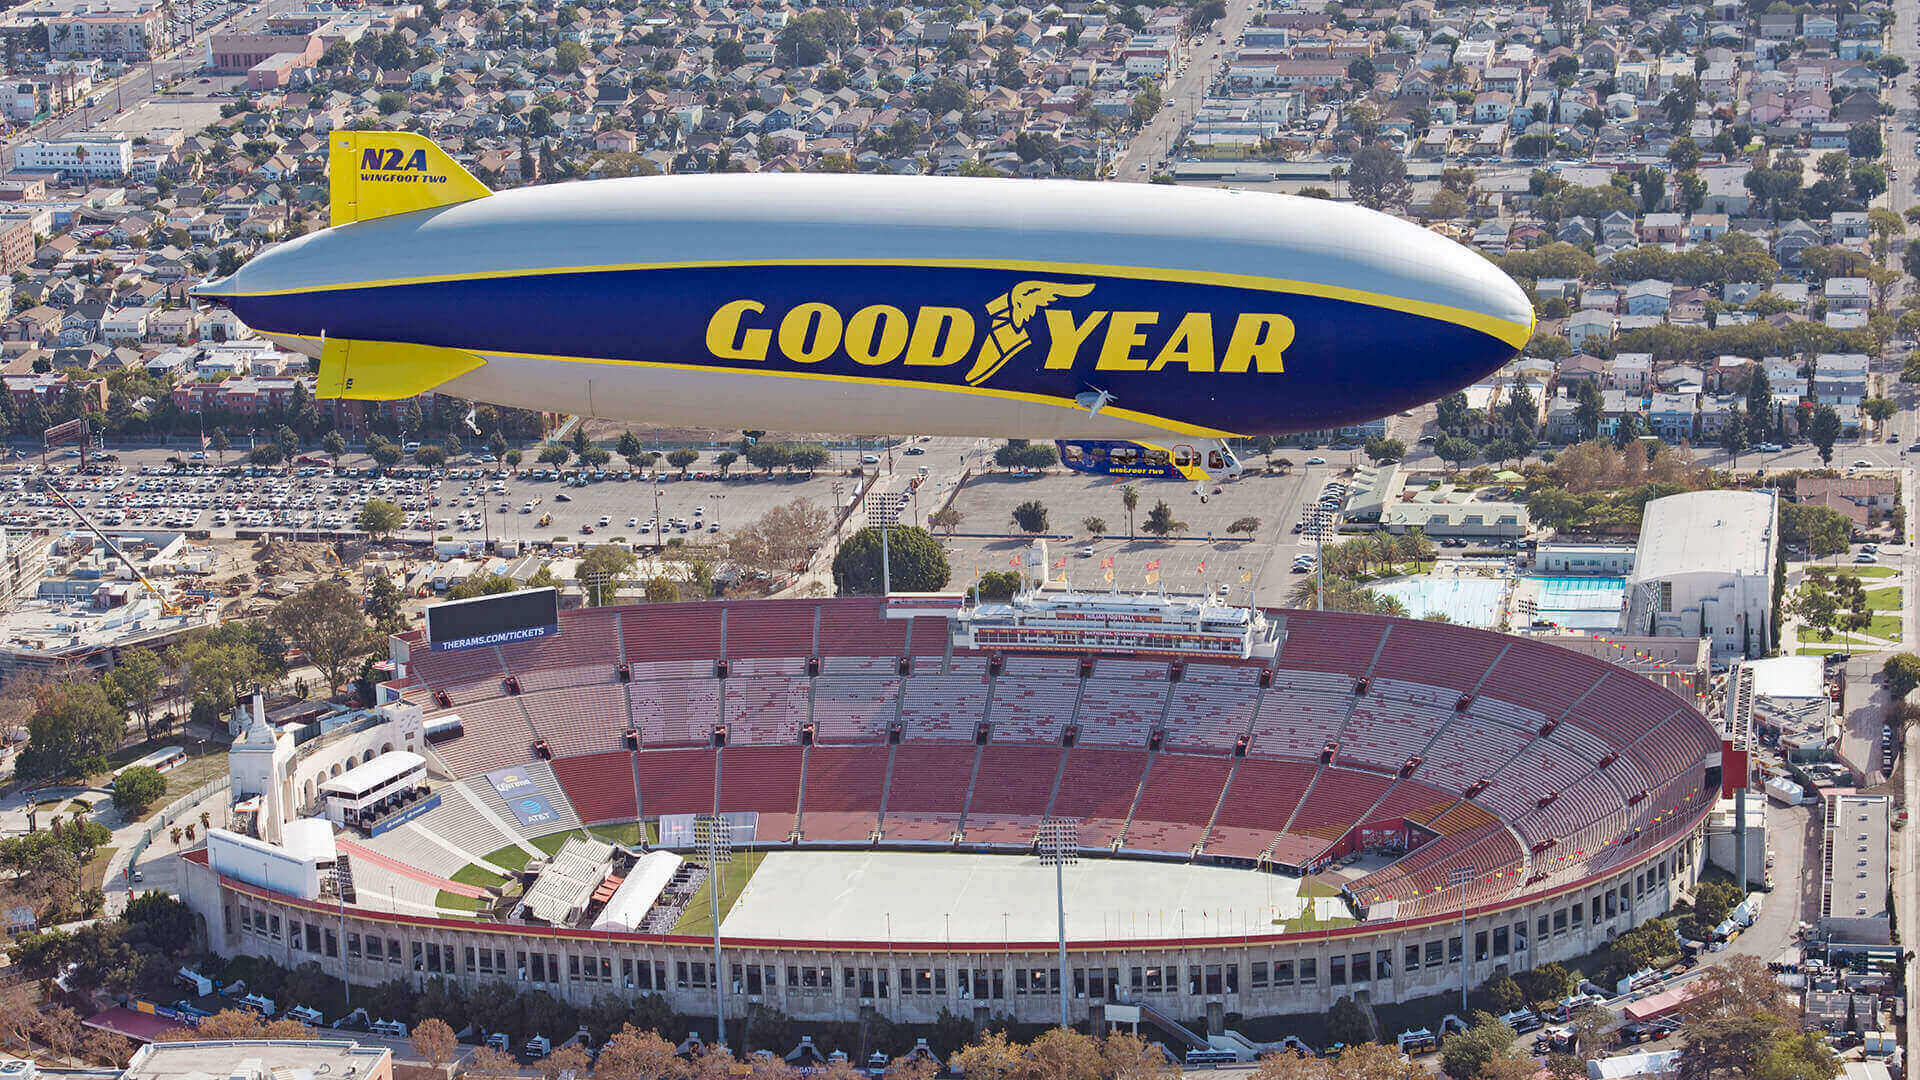 Goodyear Blimp becomes honorary member of the College Football Hall of Fame